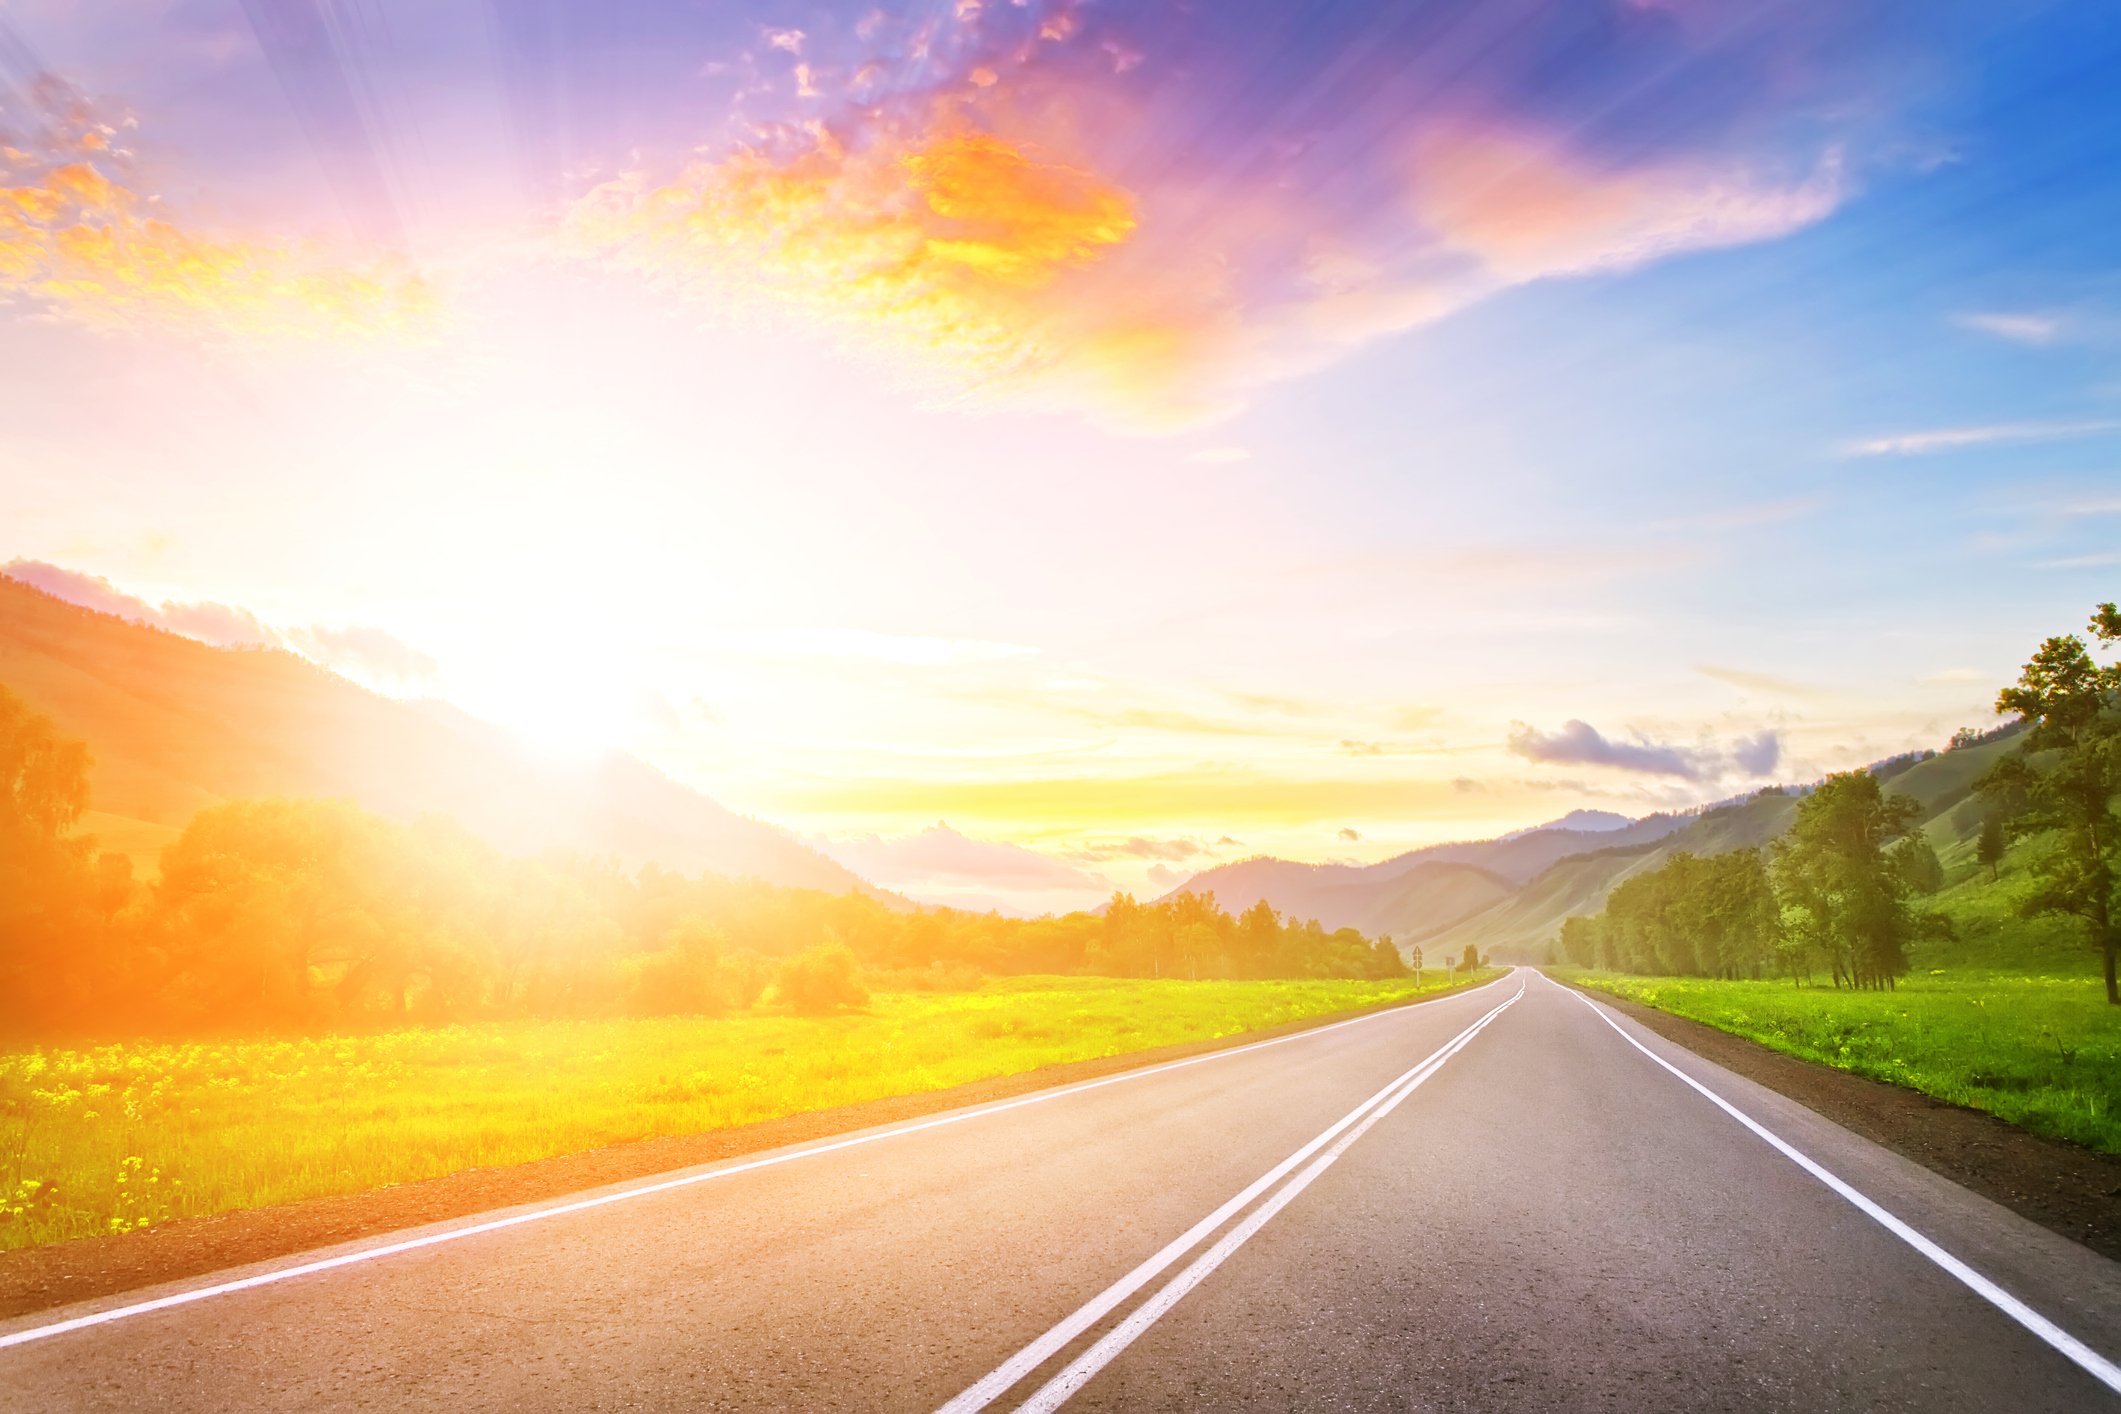 Sunset Road At Mountains Mental Health Recovery